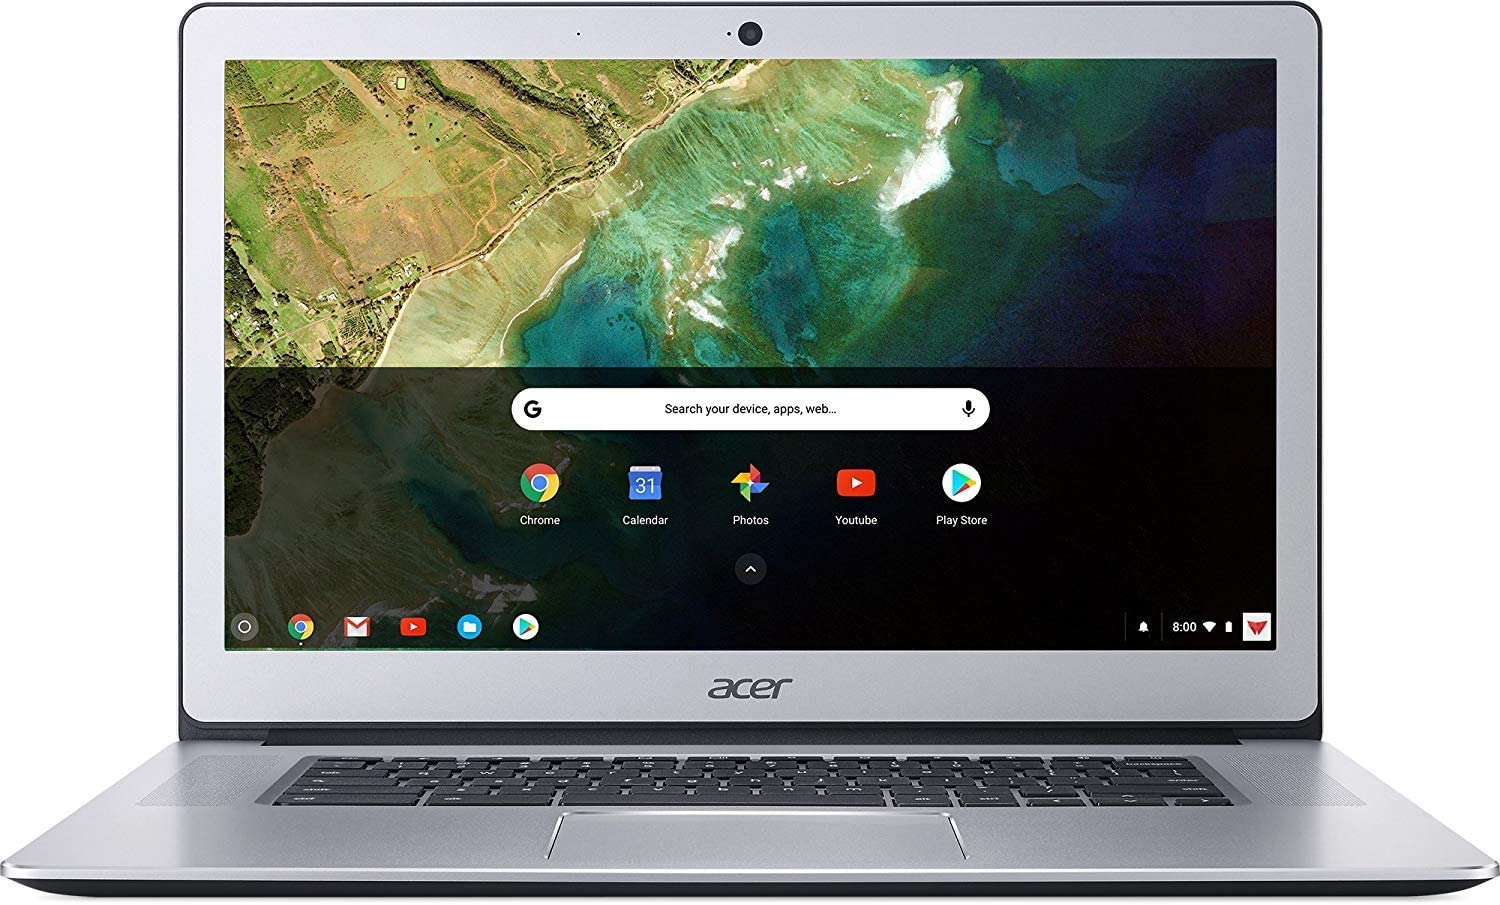 Acer 15.6in Intel Core Pentium 1.1GHz 4GB Ram 32GB Flash Chrome OS|CB515-1HT-P39B (Renewed)